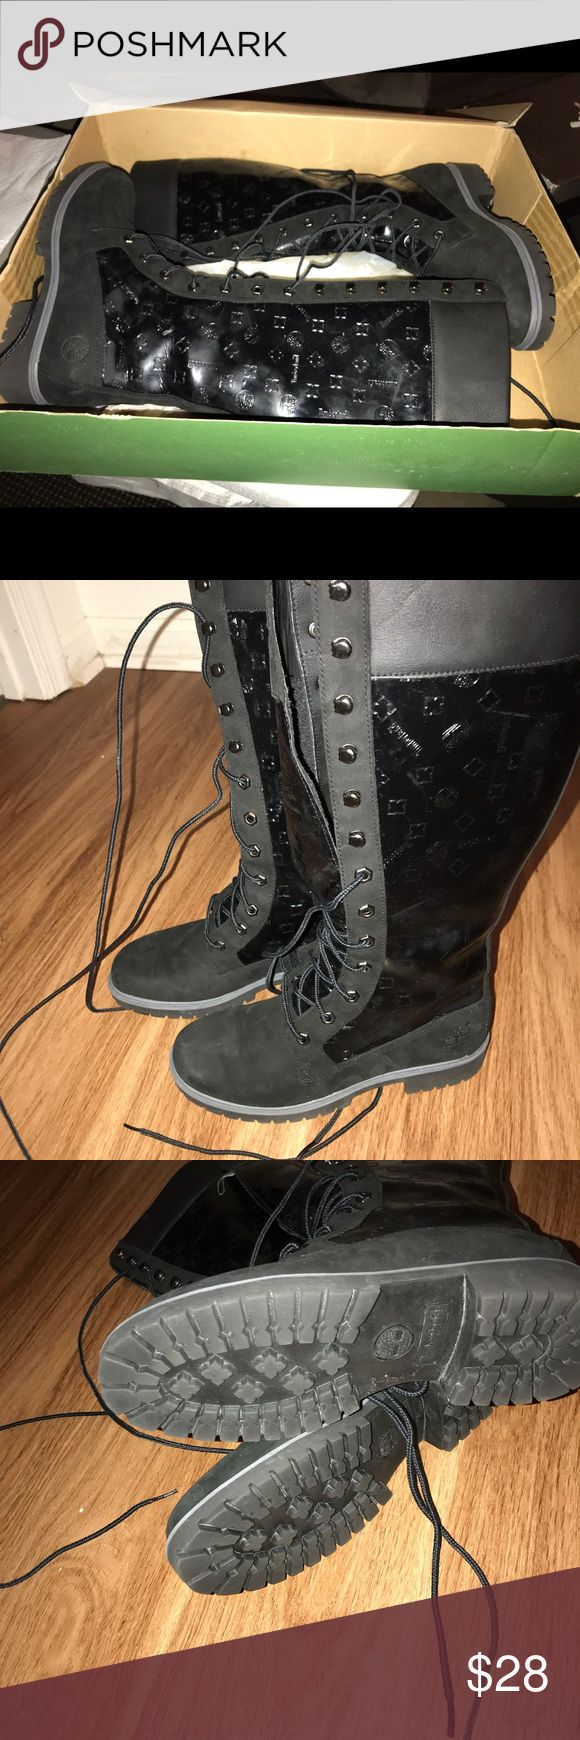 Knees high Timberland Boots Suede/patent-leather/and leather knee high boots. Worn a few times. Great condition Timberland Shoes Lace Up Boots